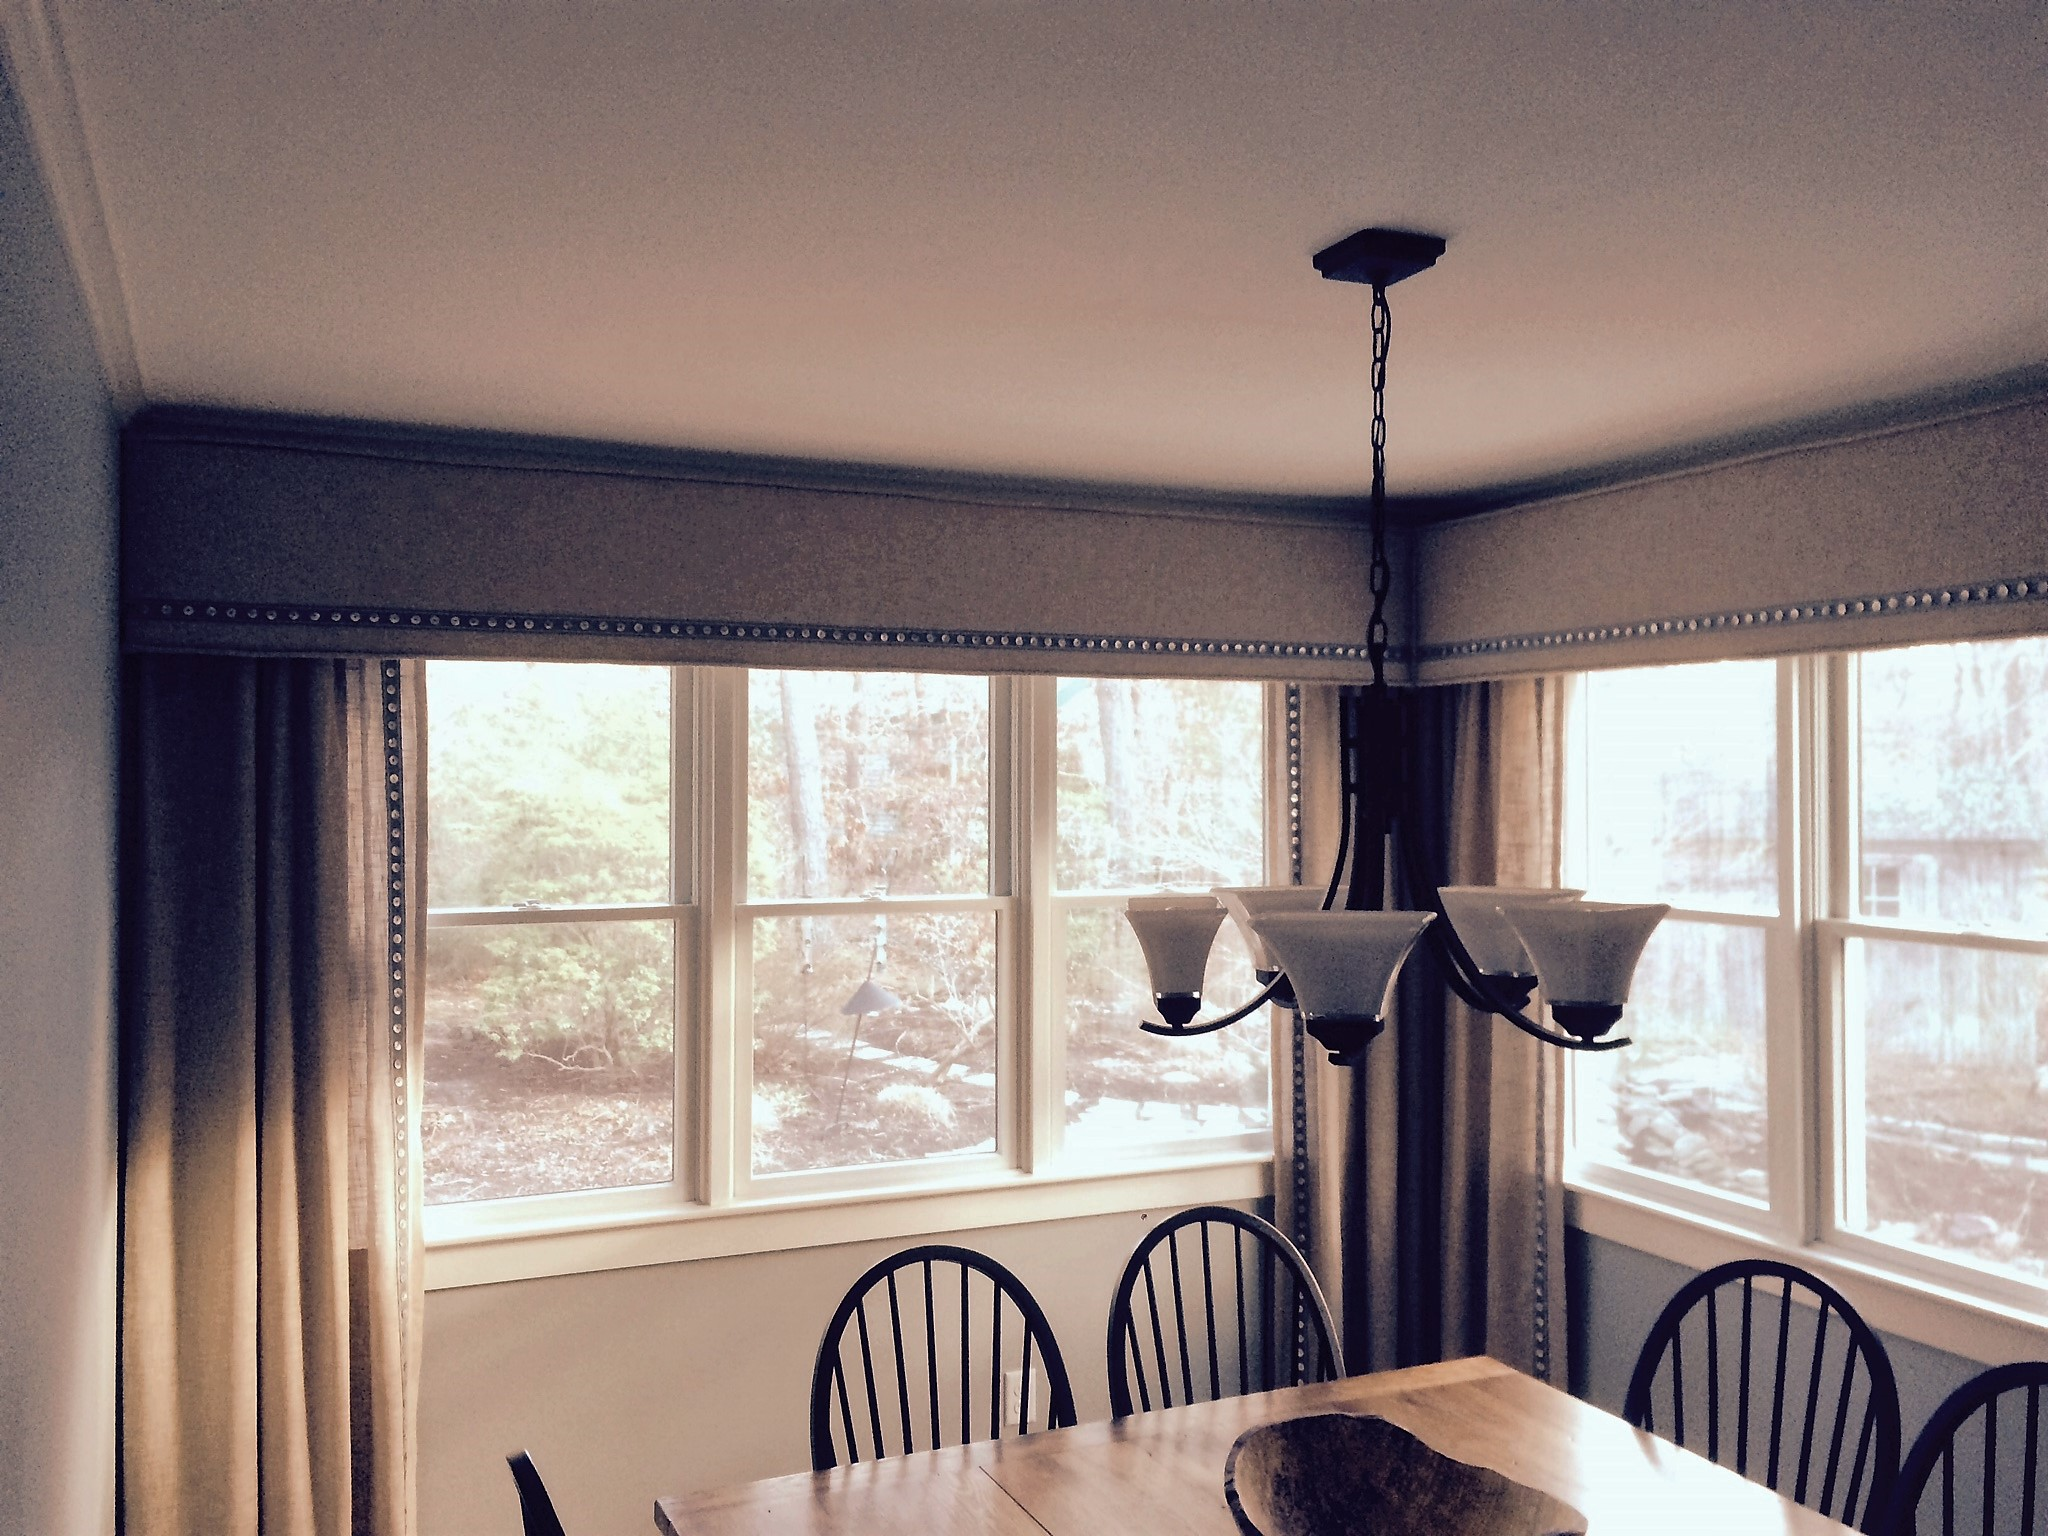 This client never intended to pull the drapes shut. Our intention is to soften the space with panels at either end of the matched cornices. We doubled the panels in the corner to make it look like you could shut them if you wanted to. The decorative trim on the leading edge of the panels is a nice touch.